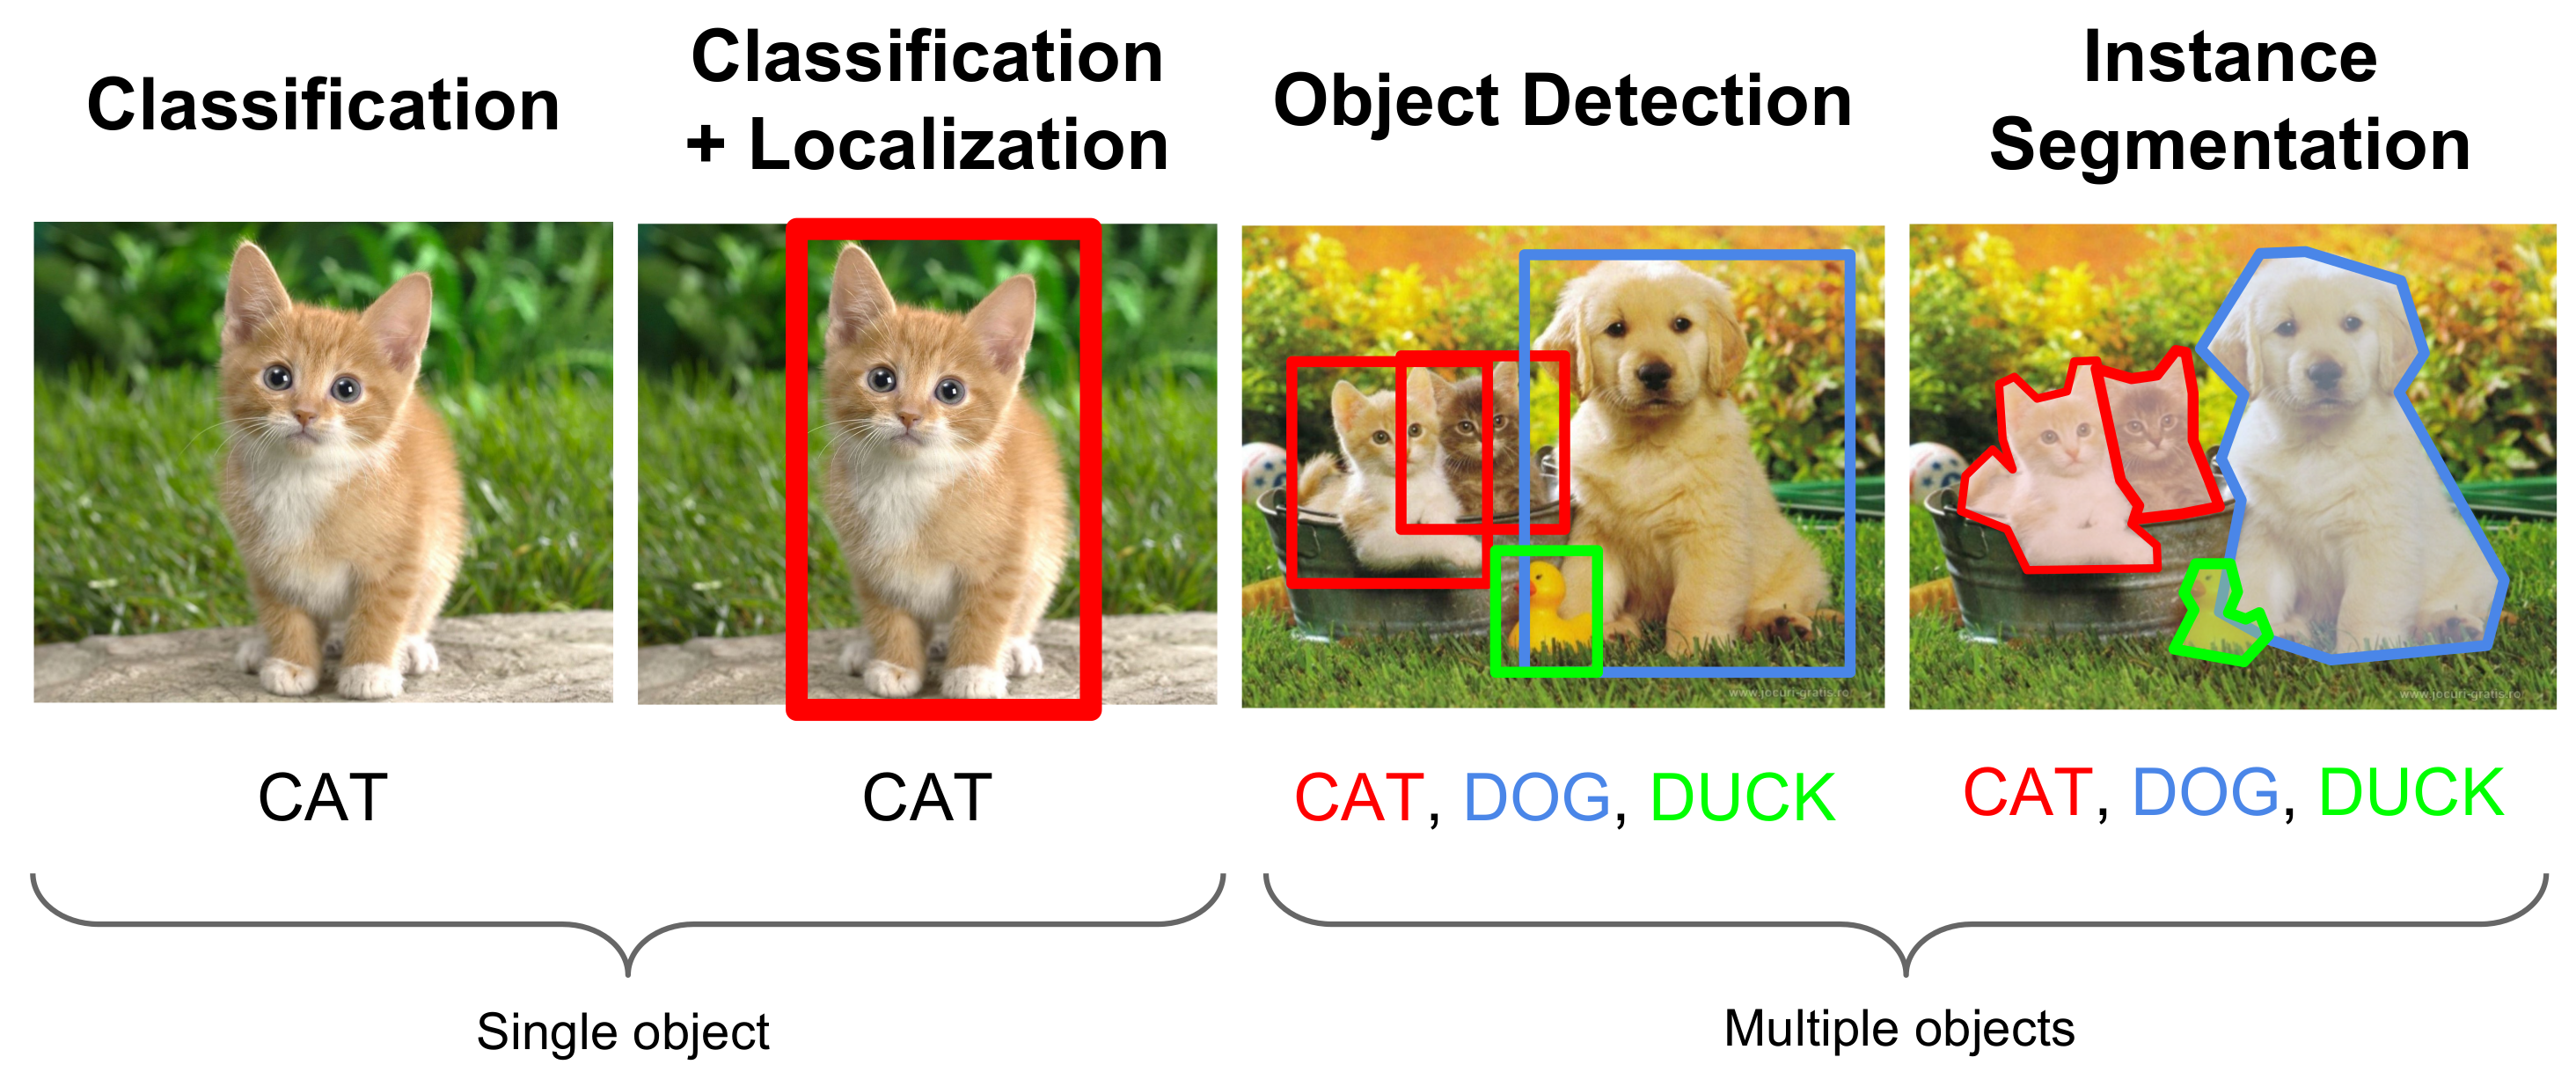 Difference between Classification, Localization, Detection and Segmentation